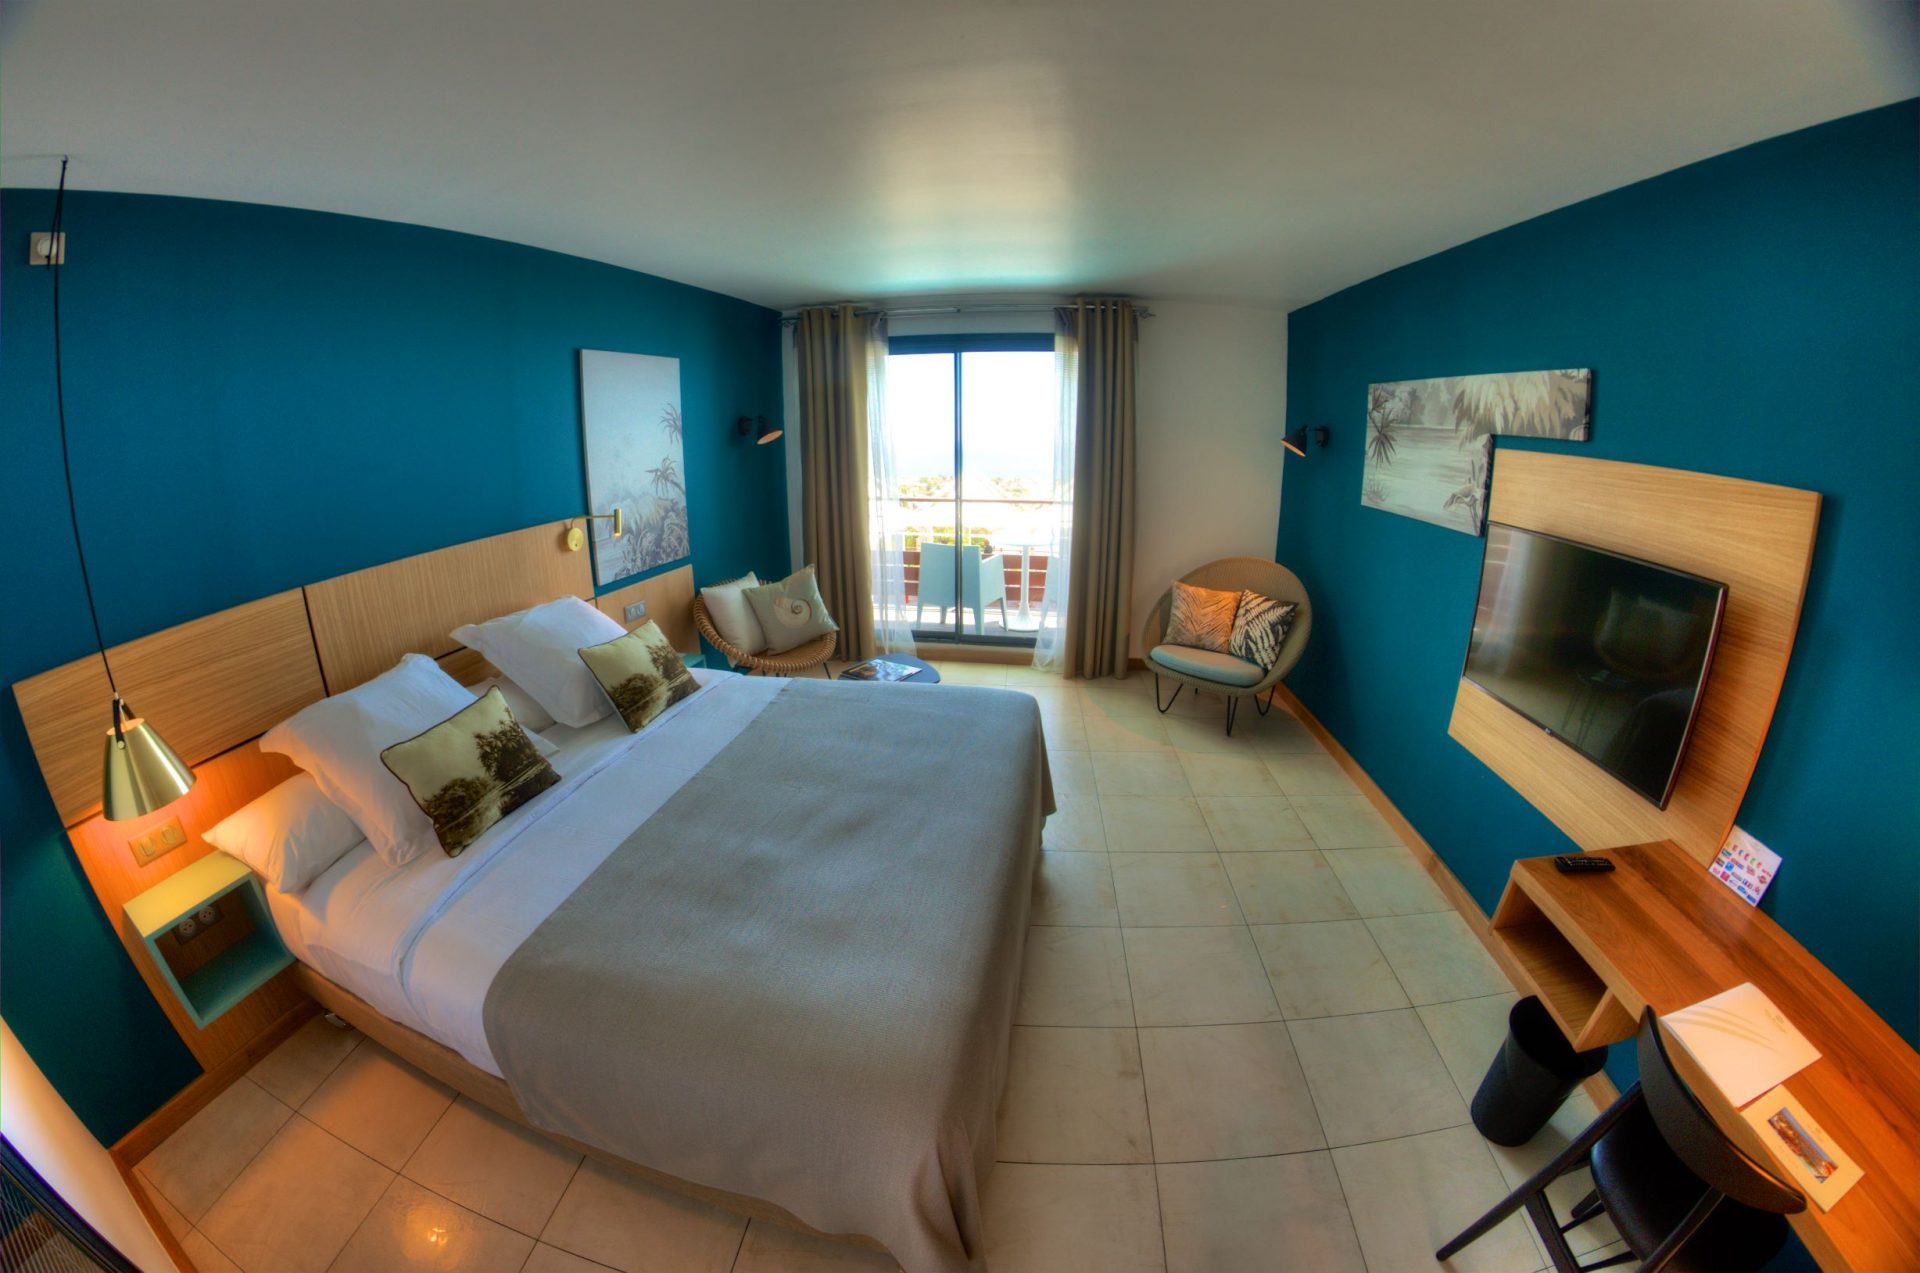 20181012HOTEL-BELLEPIERRE-CHAMBRES 04